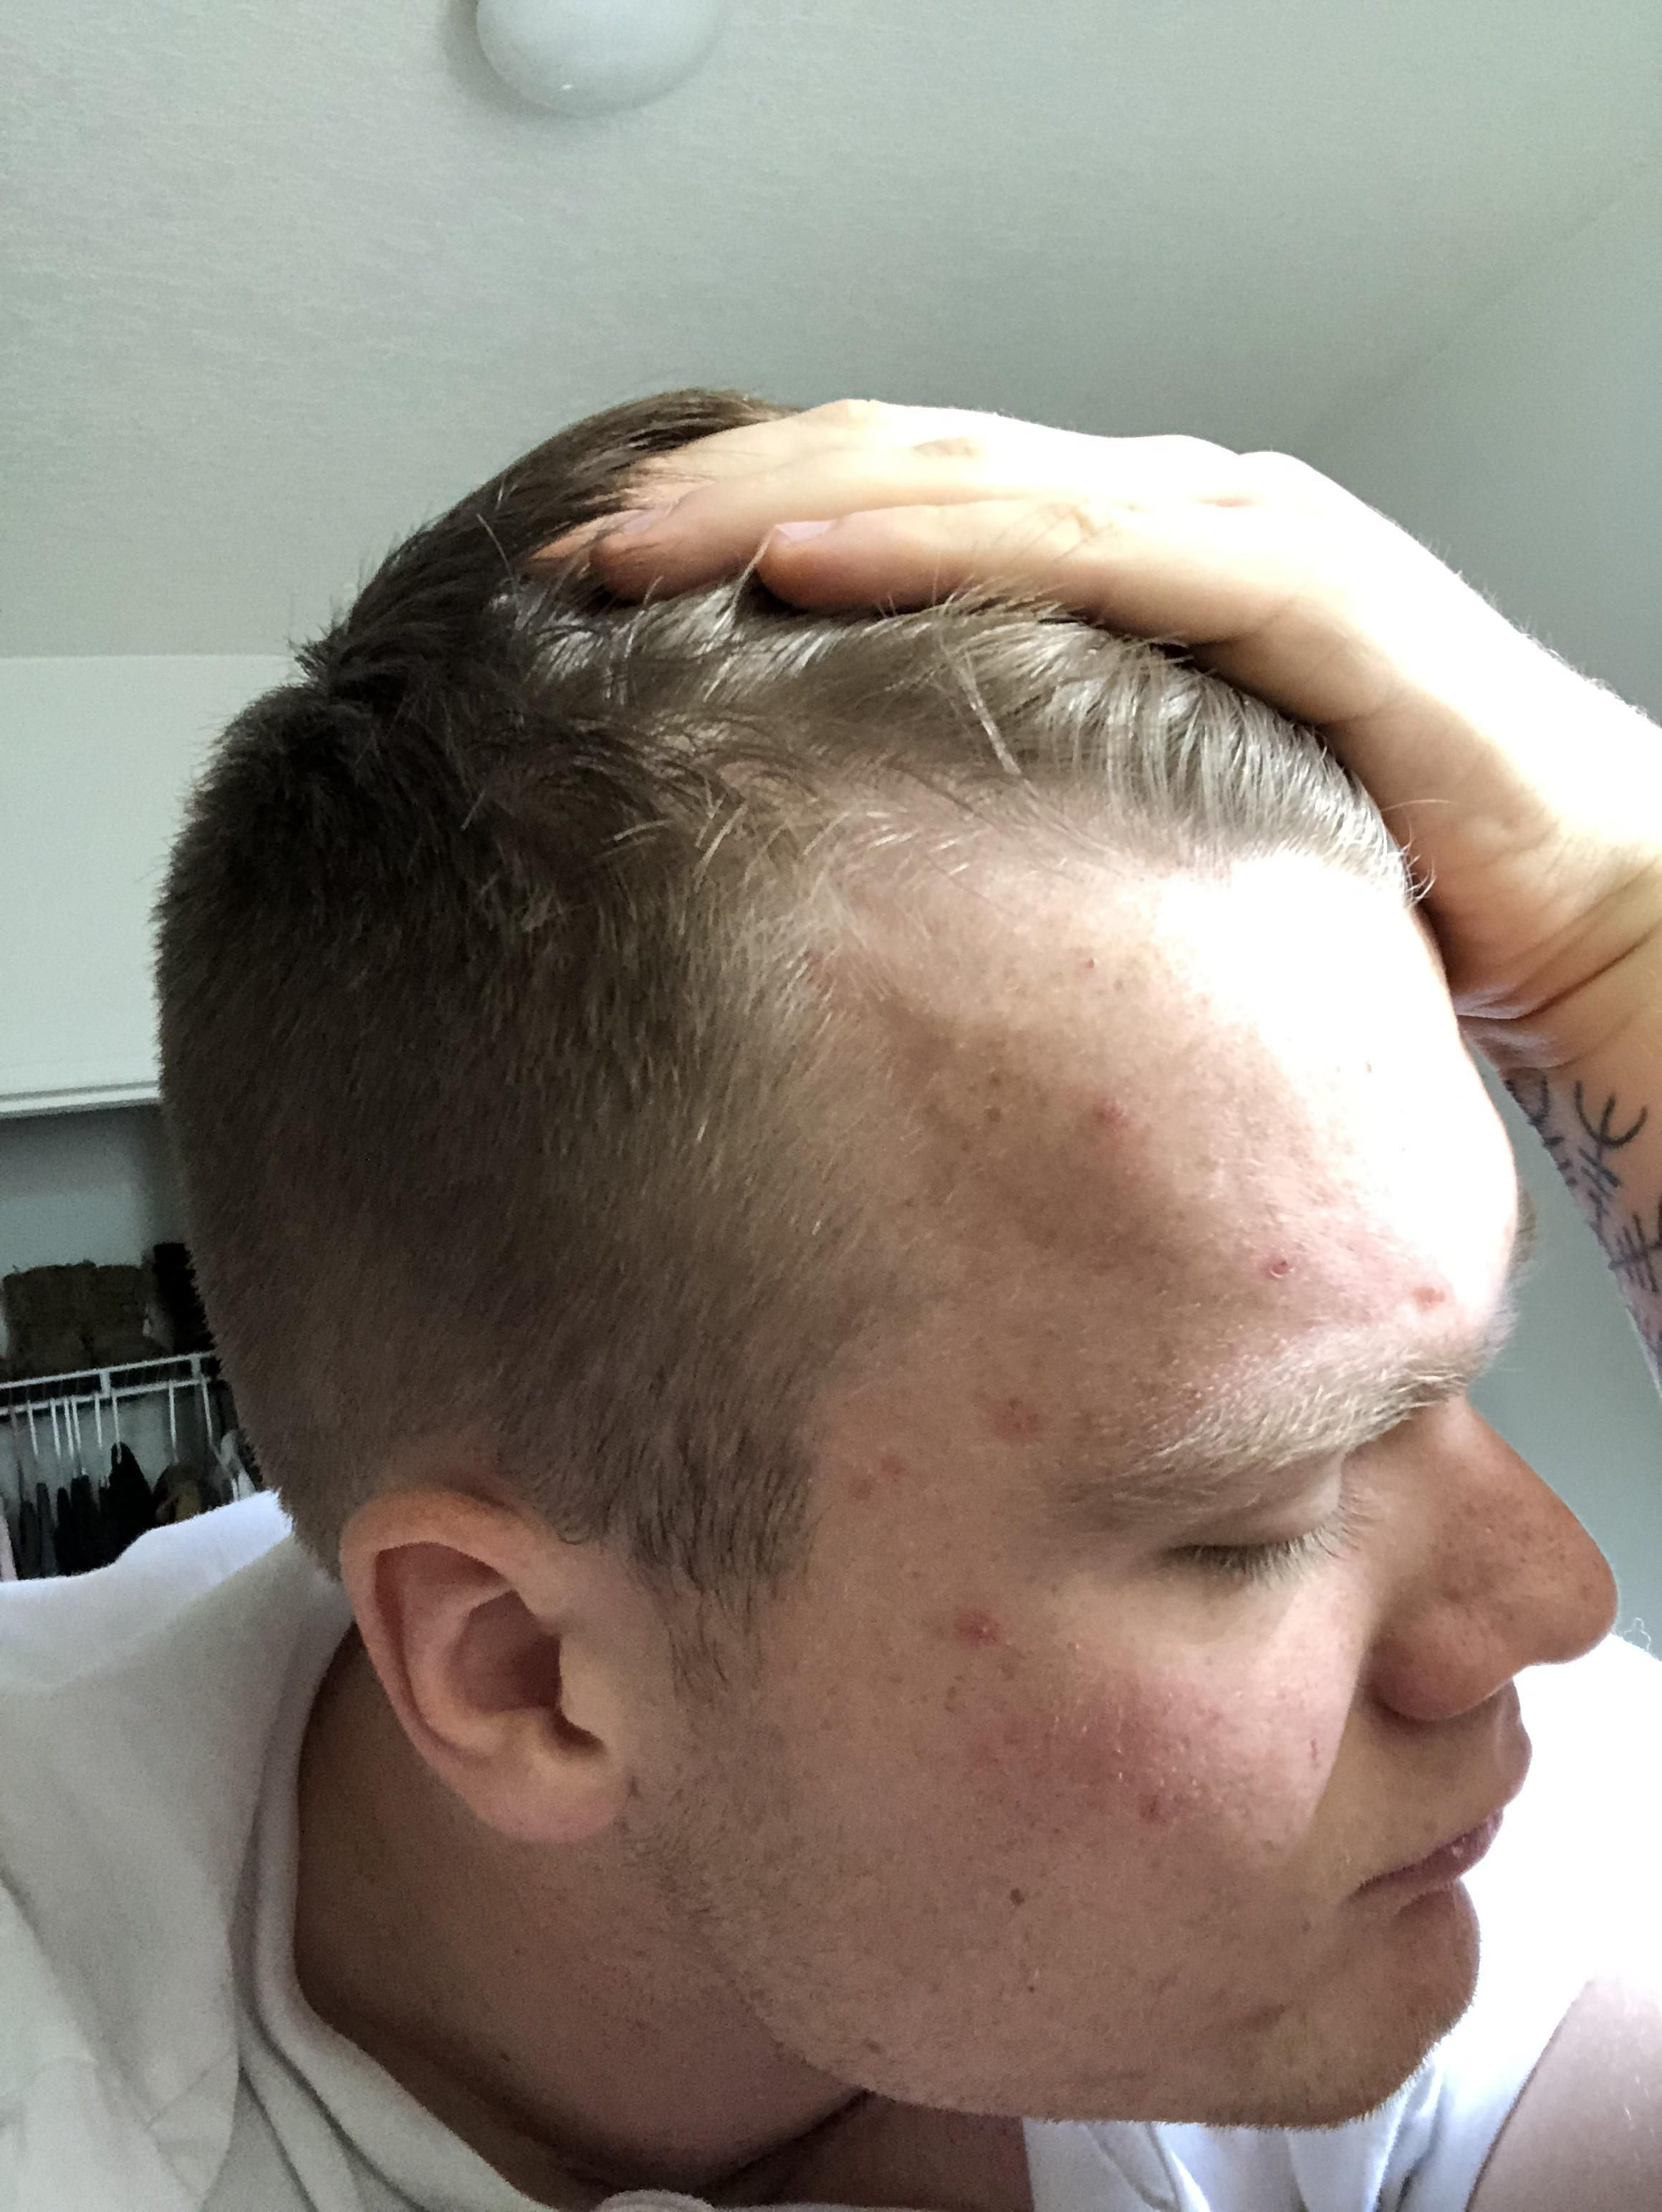 am i going bald? is it possible this is just my hairline? 20